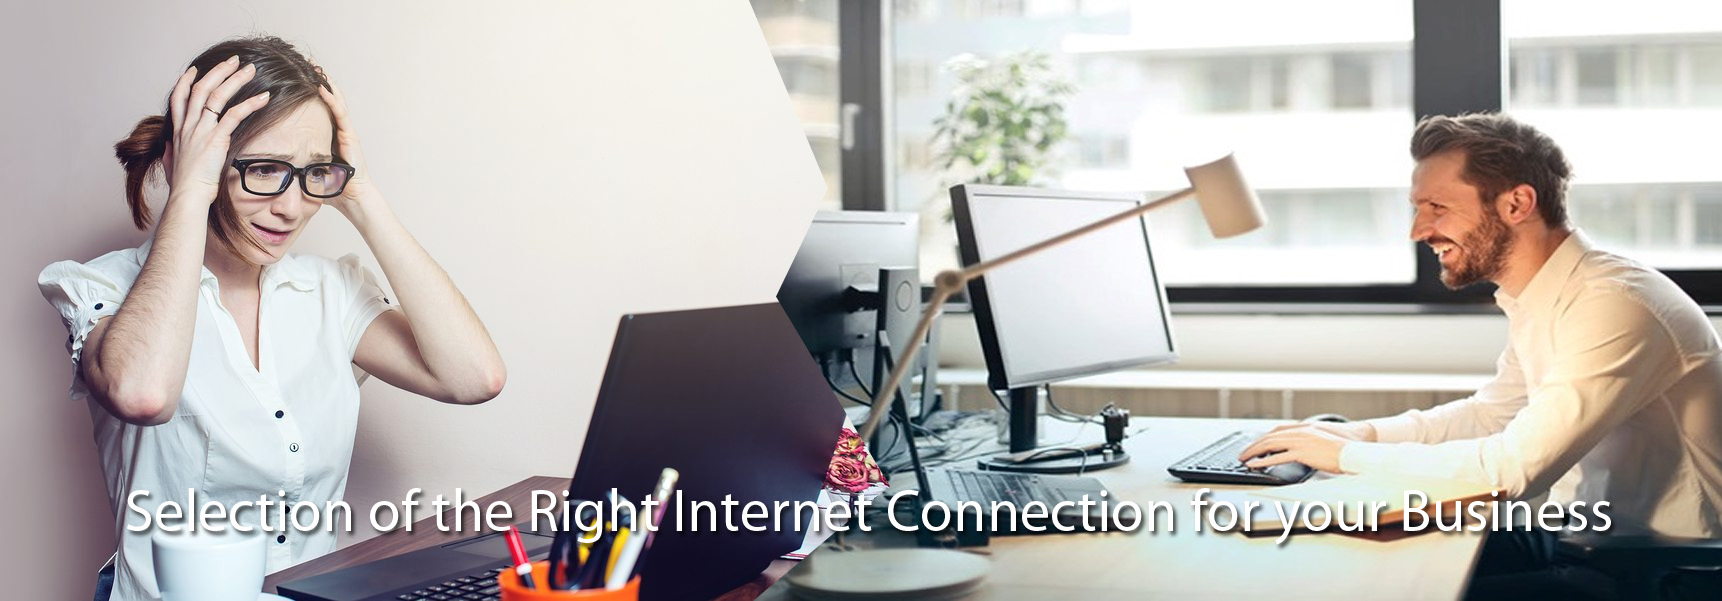 Selection of the Right Internet Connection for your Business